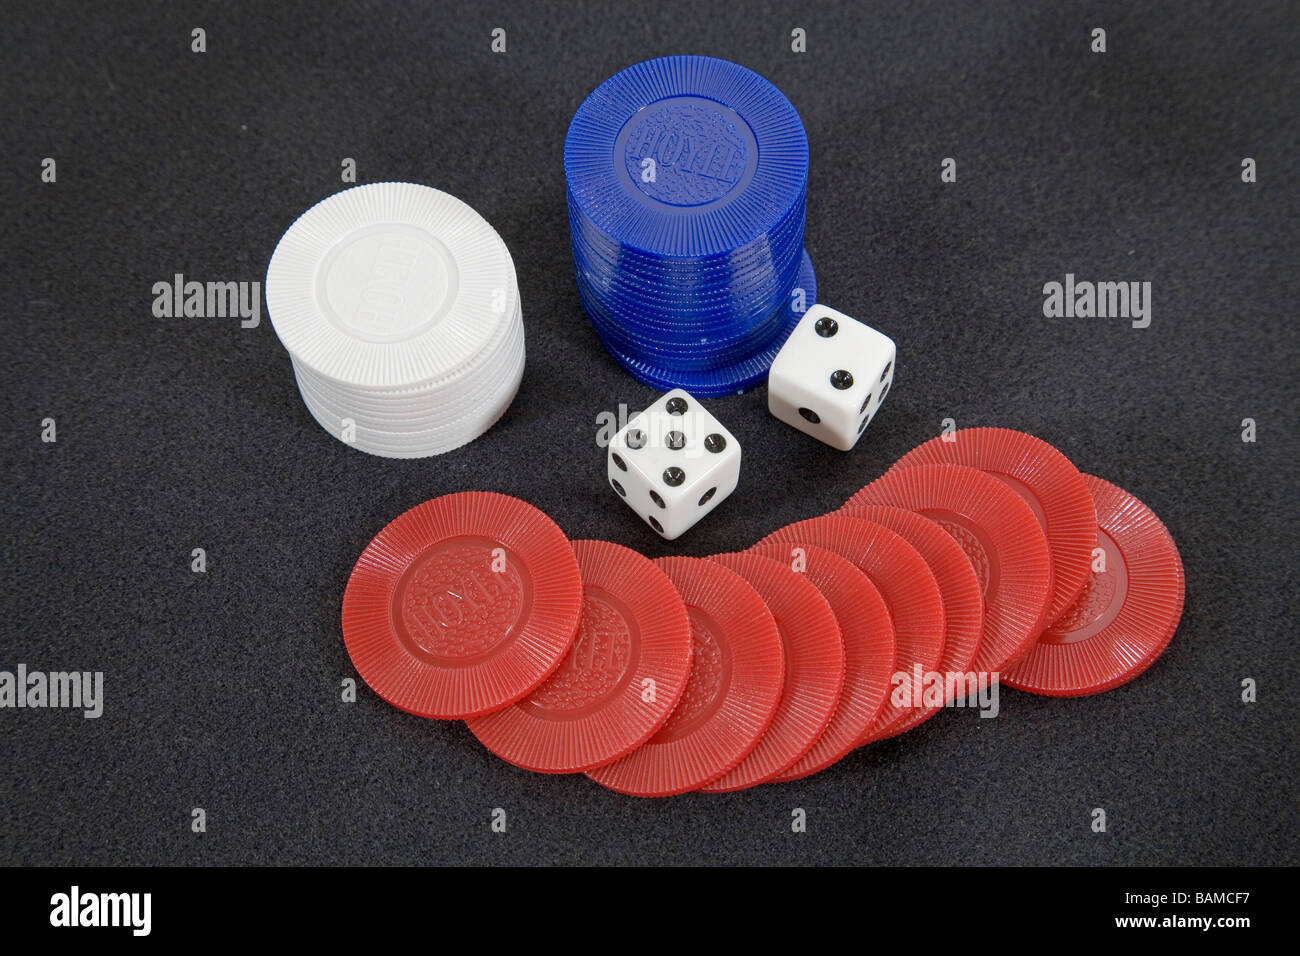 A winner Dice showing a five and a two for a total of seven spots - Stock Image